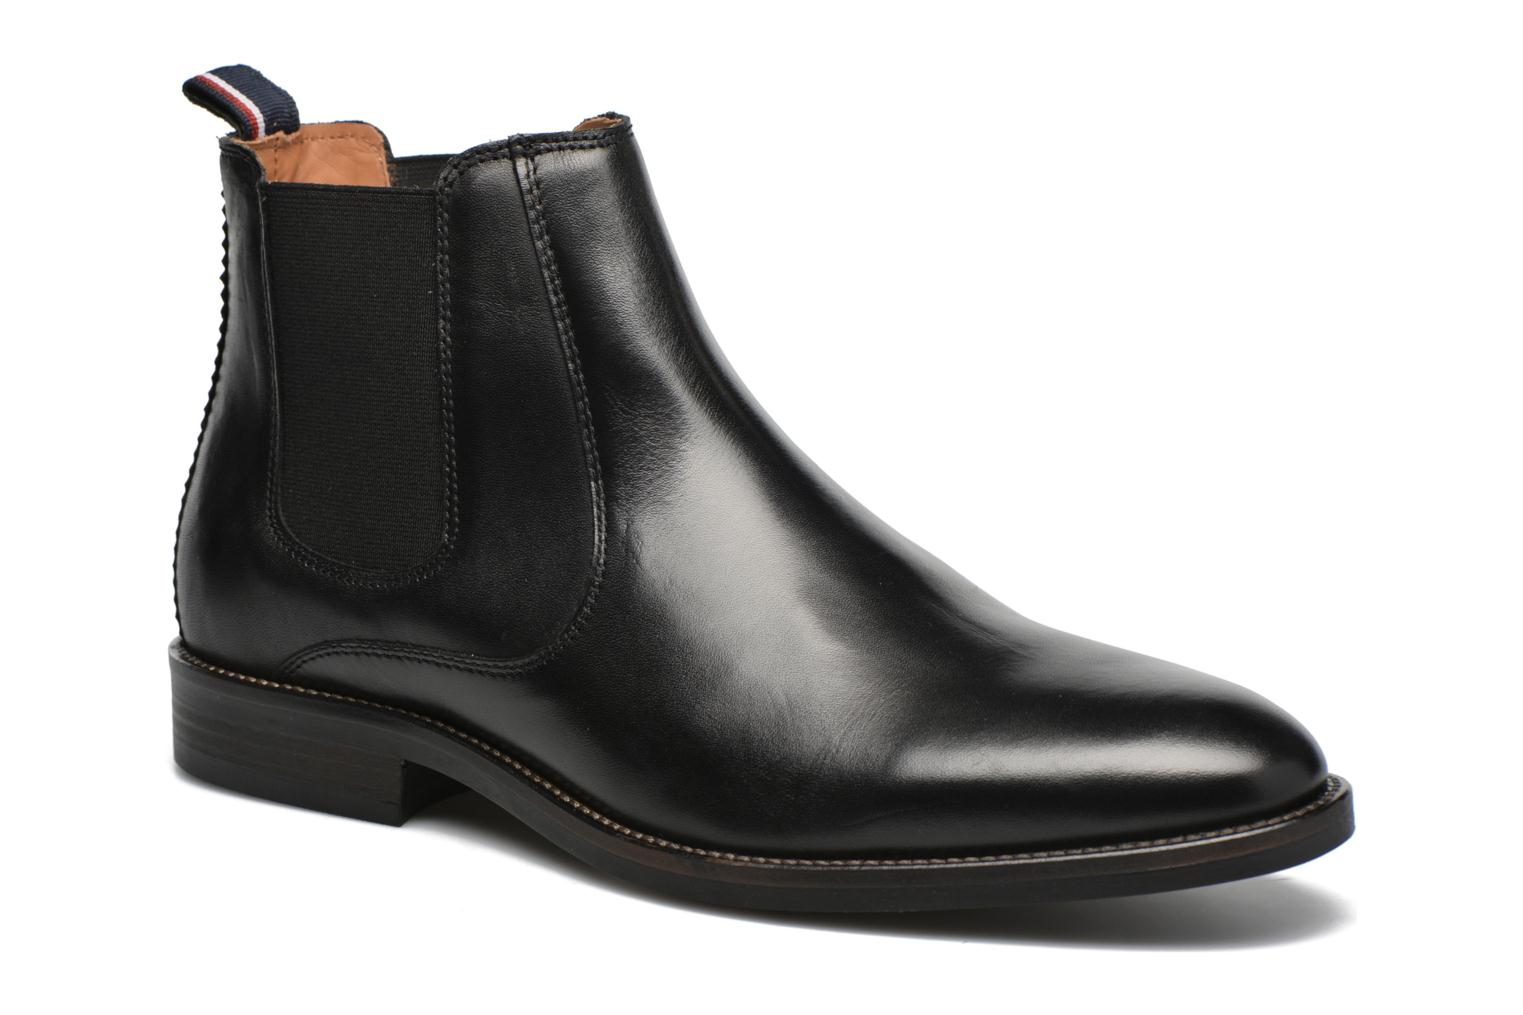 tommy hilfiger dallen 13a stiefeletten boots f r herren schwarz bei sarenza g nstig. Black Bedroom Furniture Sets. Home Design Ideas